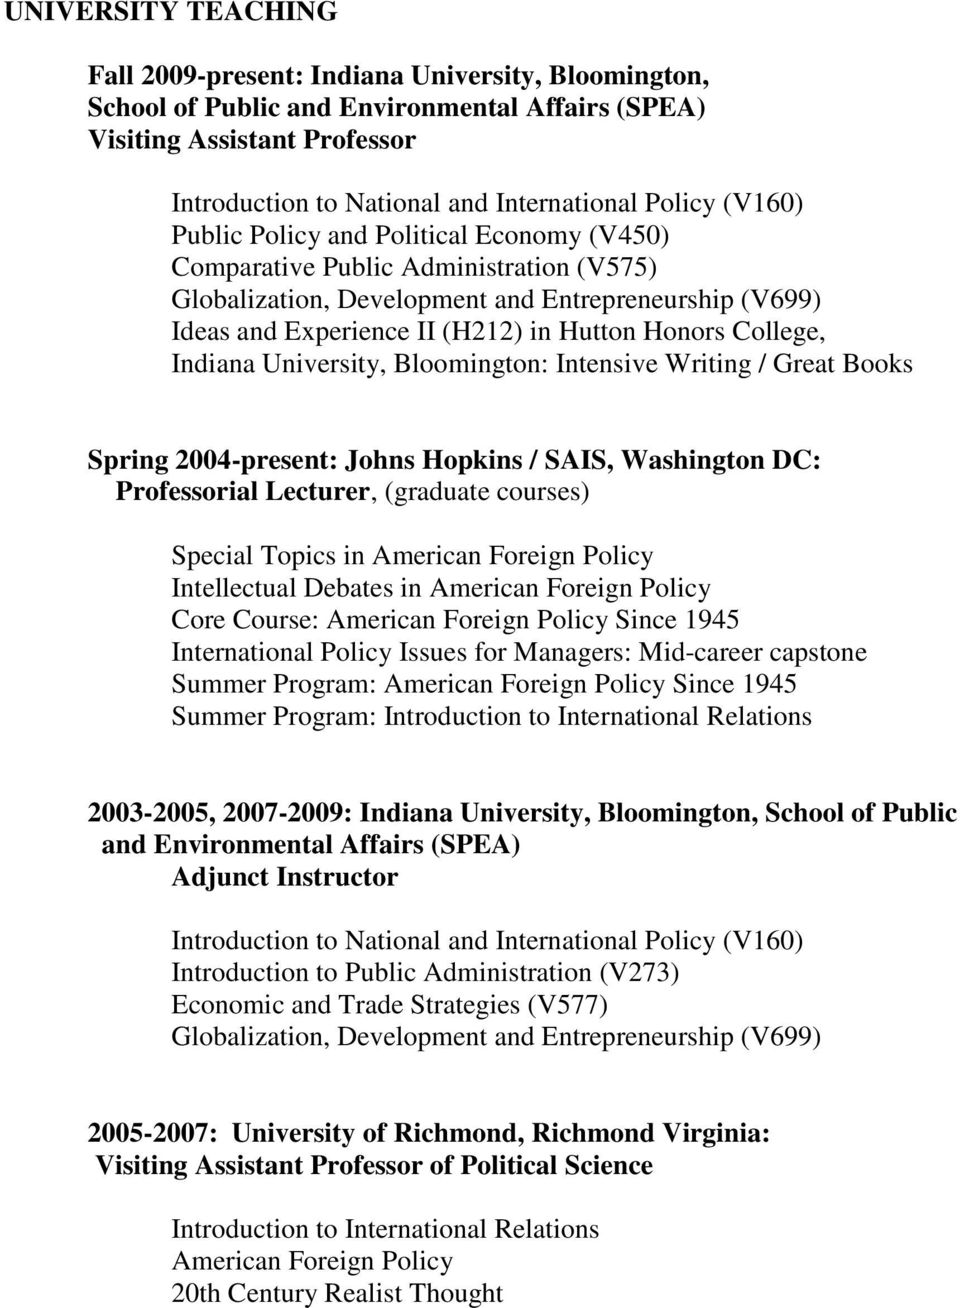 Bloomington: Intensive Writing / Great Books Spring 2004-present: Johns Hopkins / SAIS, Washington DC: Professorial Lecturer, (graduate courses) Special Topics in American Foreign Policy Core Course: